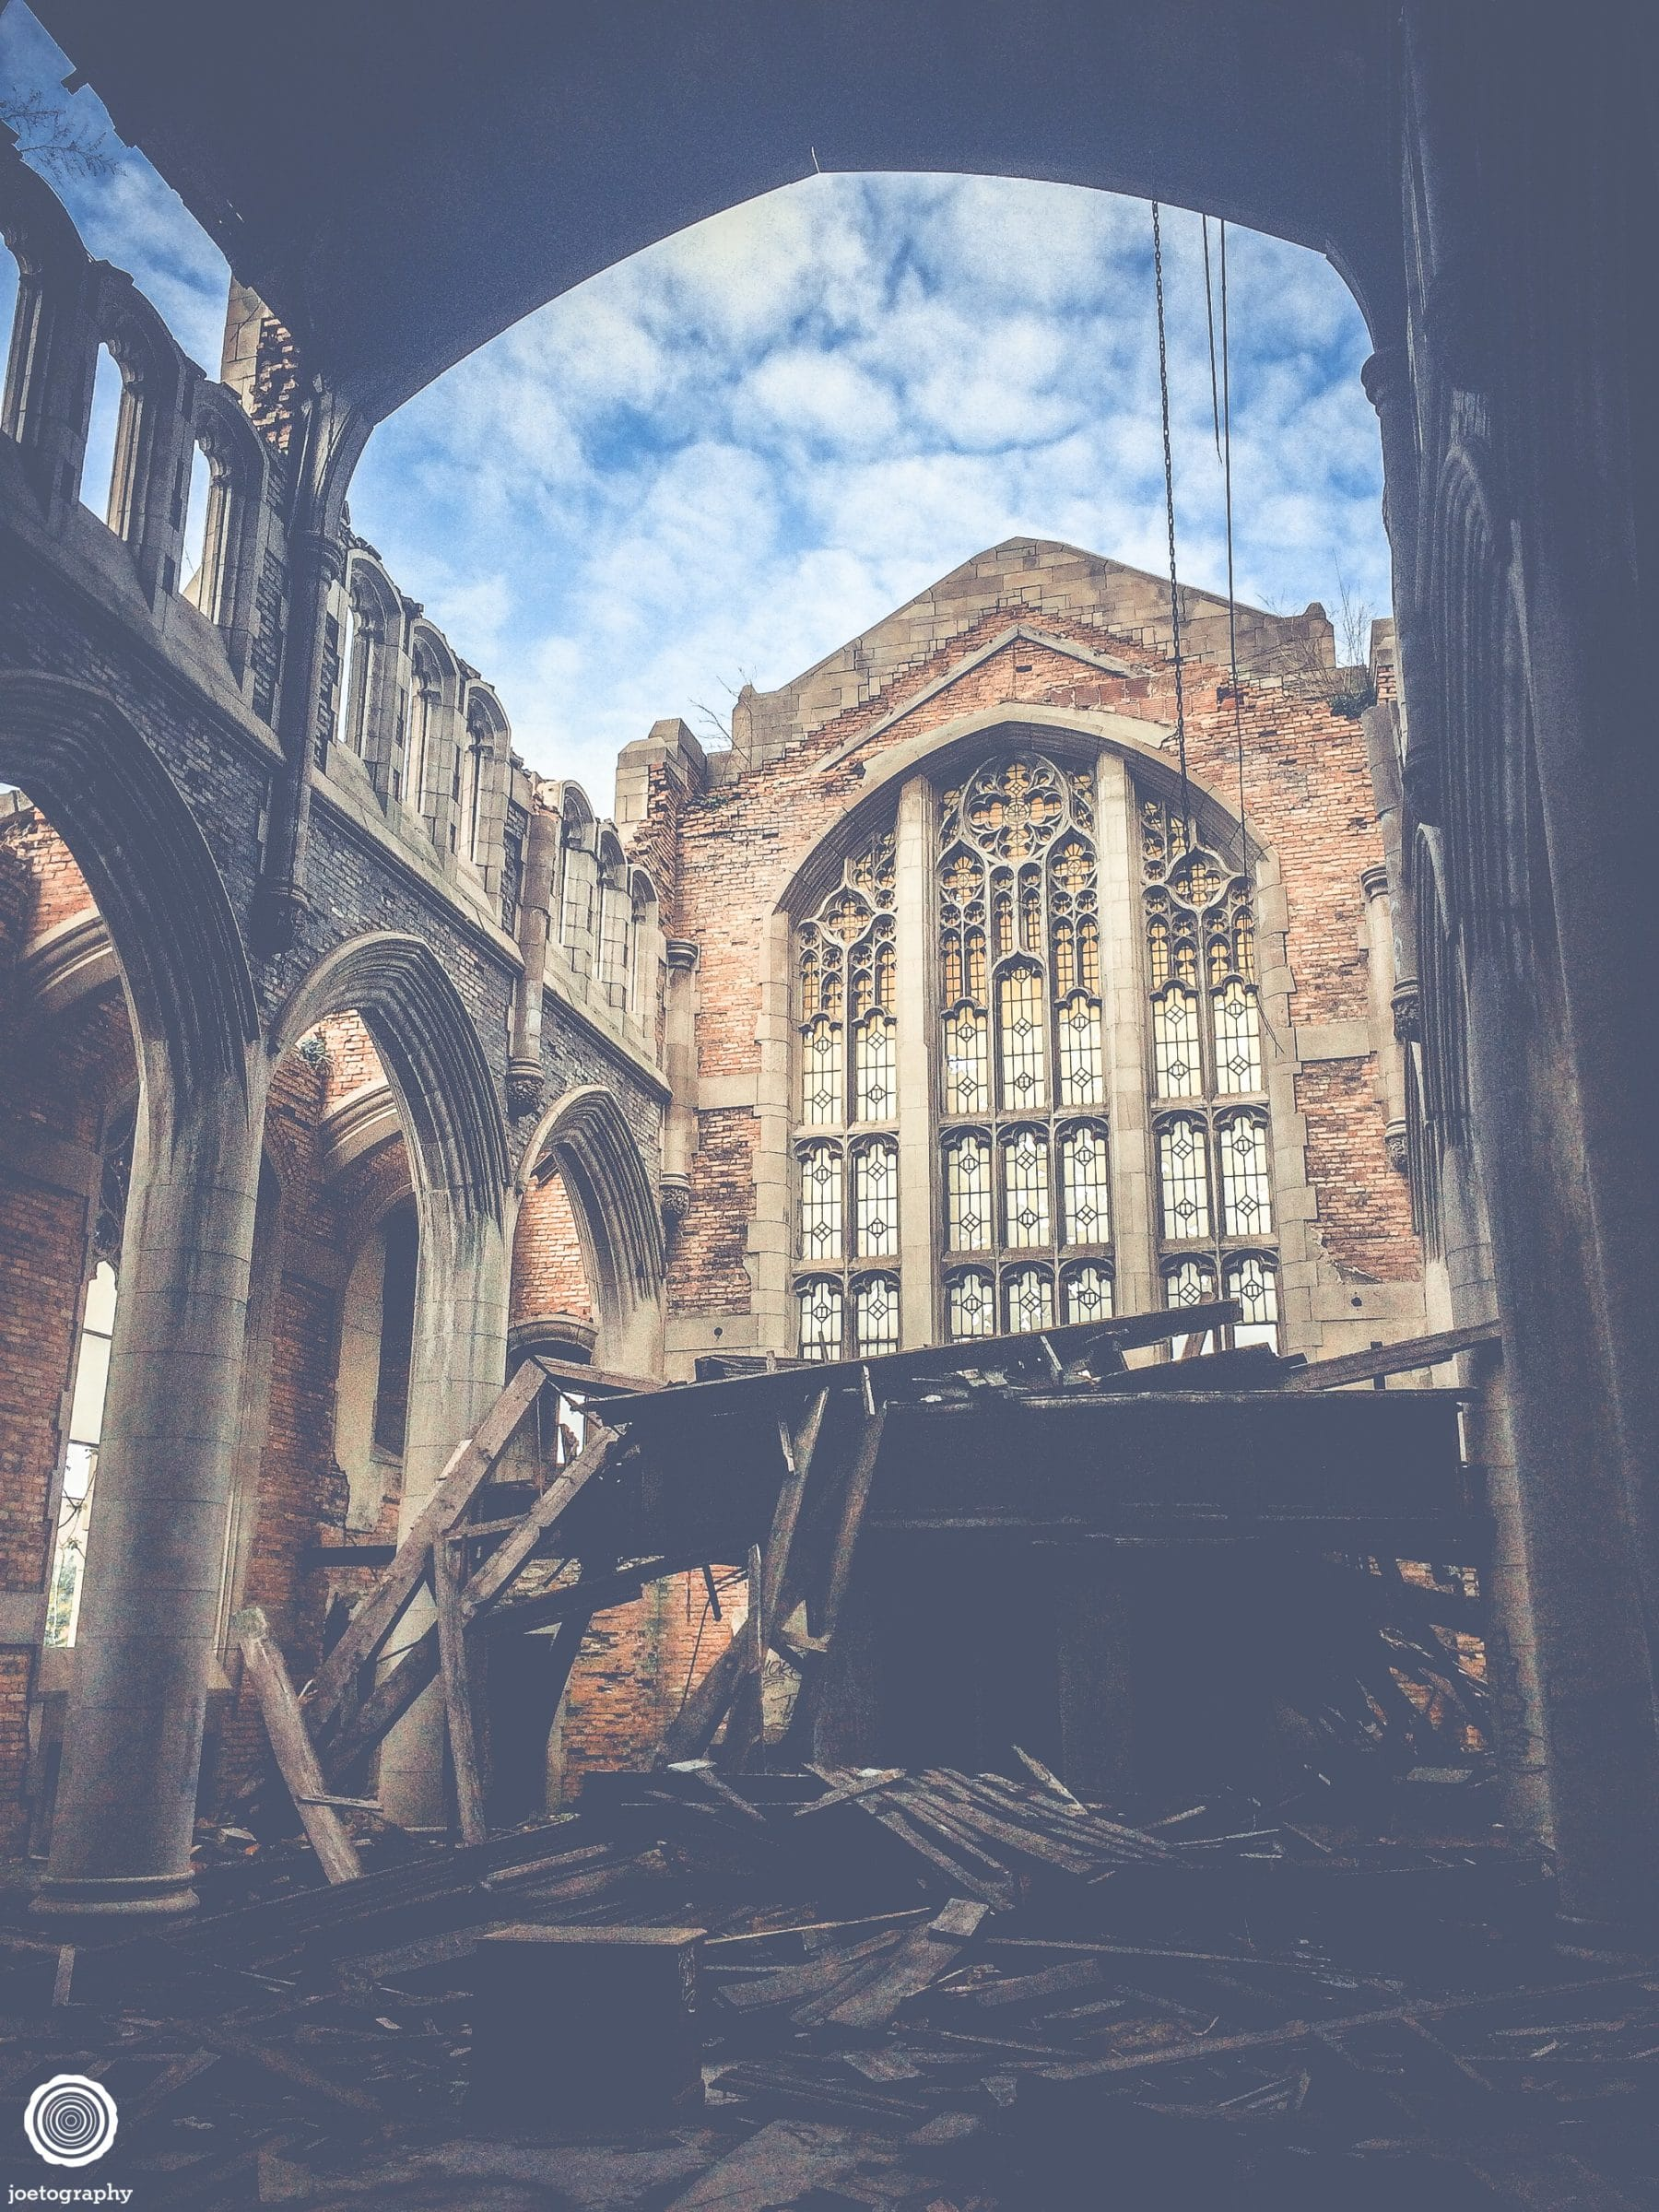 abandoned-city-methodist-church-gary-indiana-8